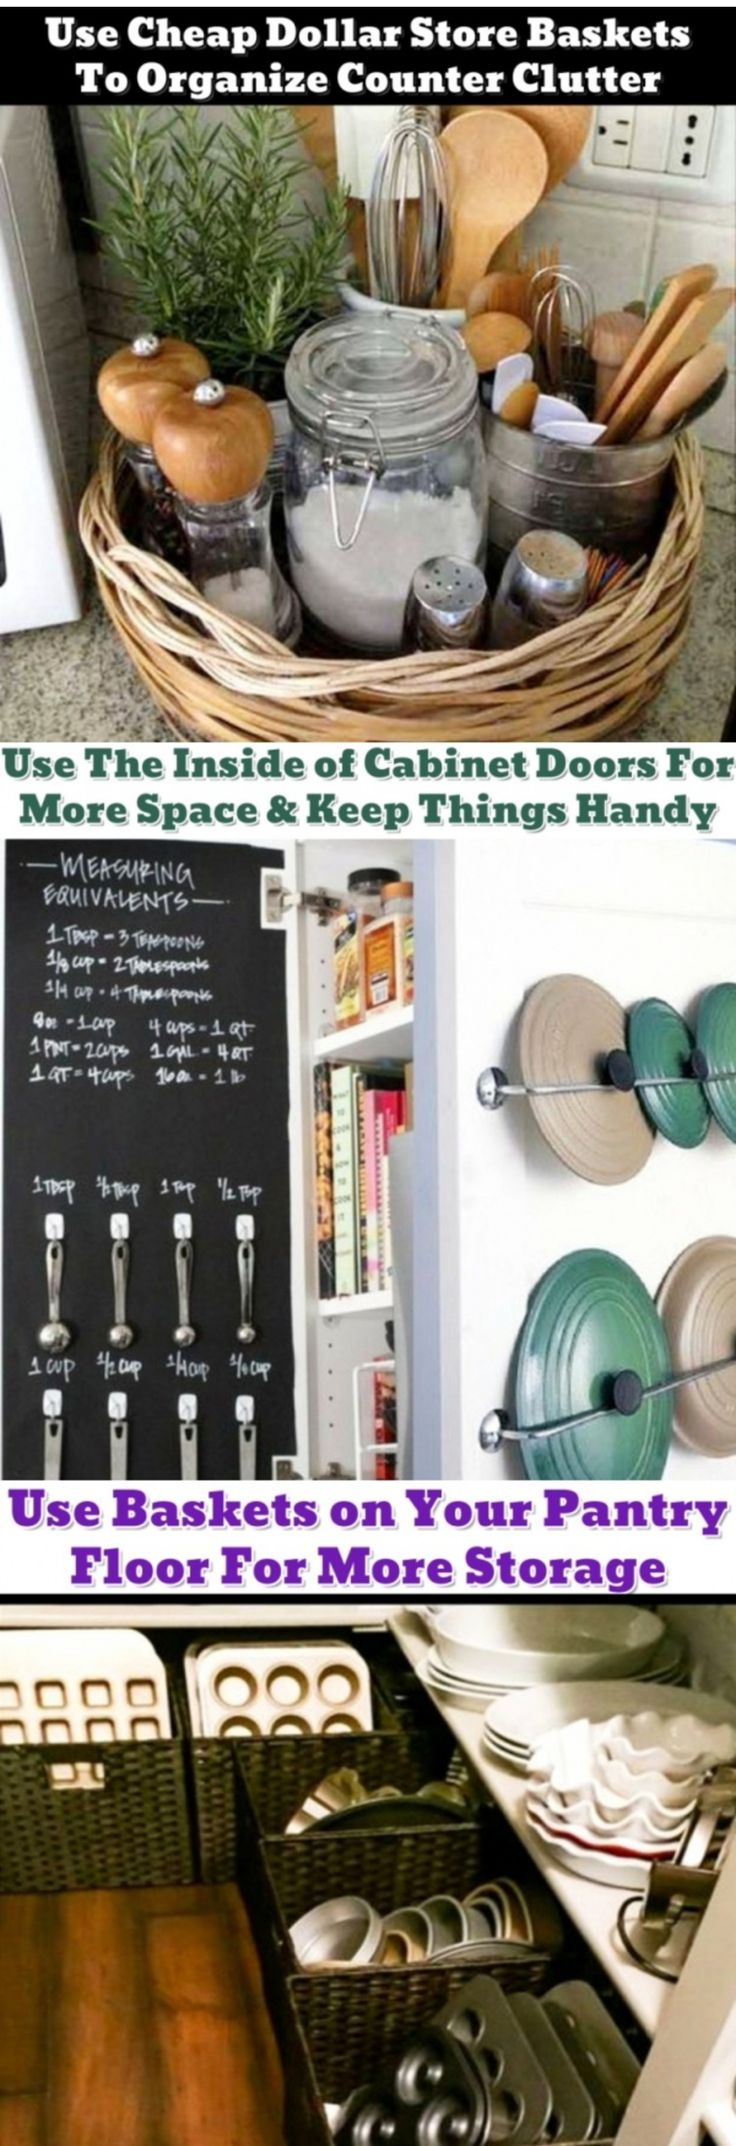 Clever ideas for organizing the kitchen - and for organizing the clutter - haha!  Very helpful for small kitchens with limited storage space.